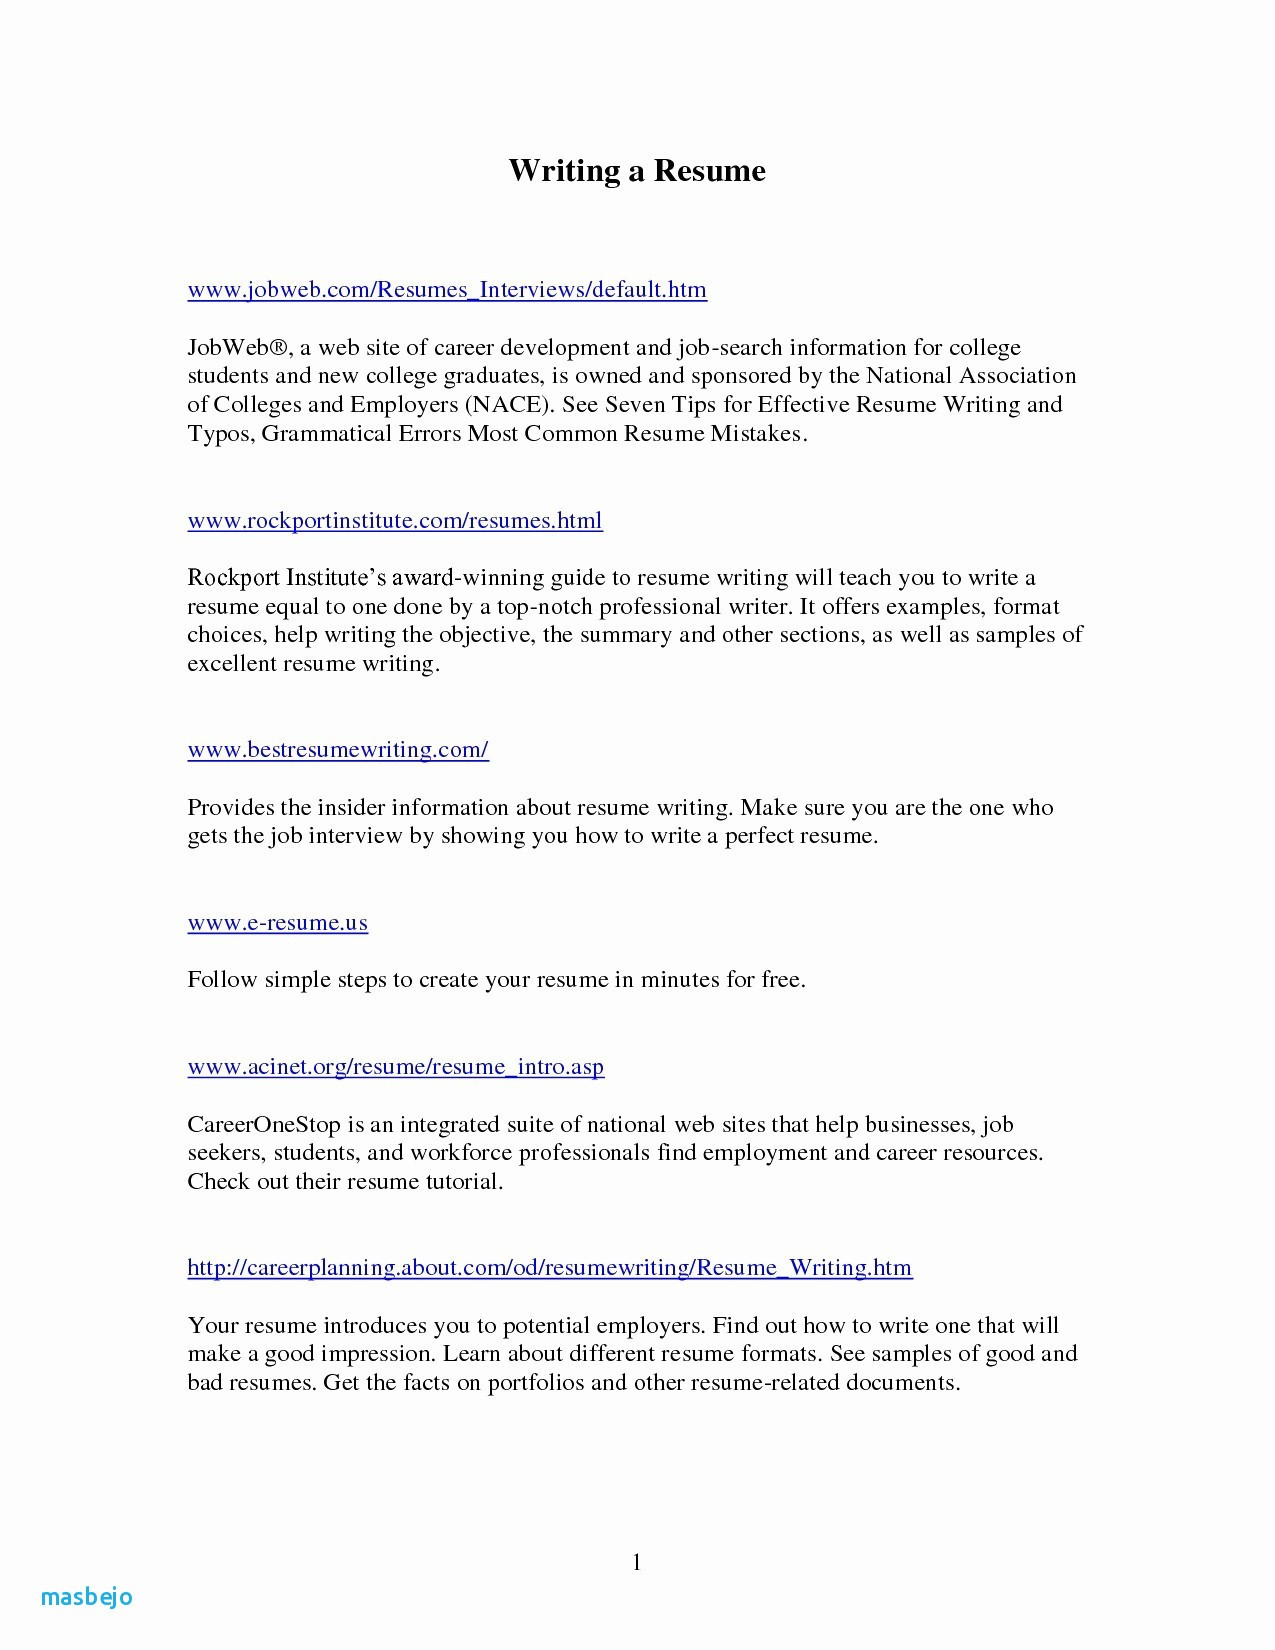 Sample Resumes for College Students - Sample Resumes for College Students Inspirationa Sample Resume